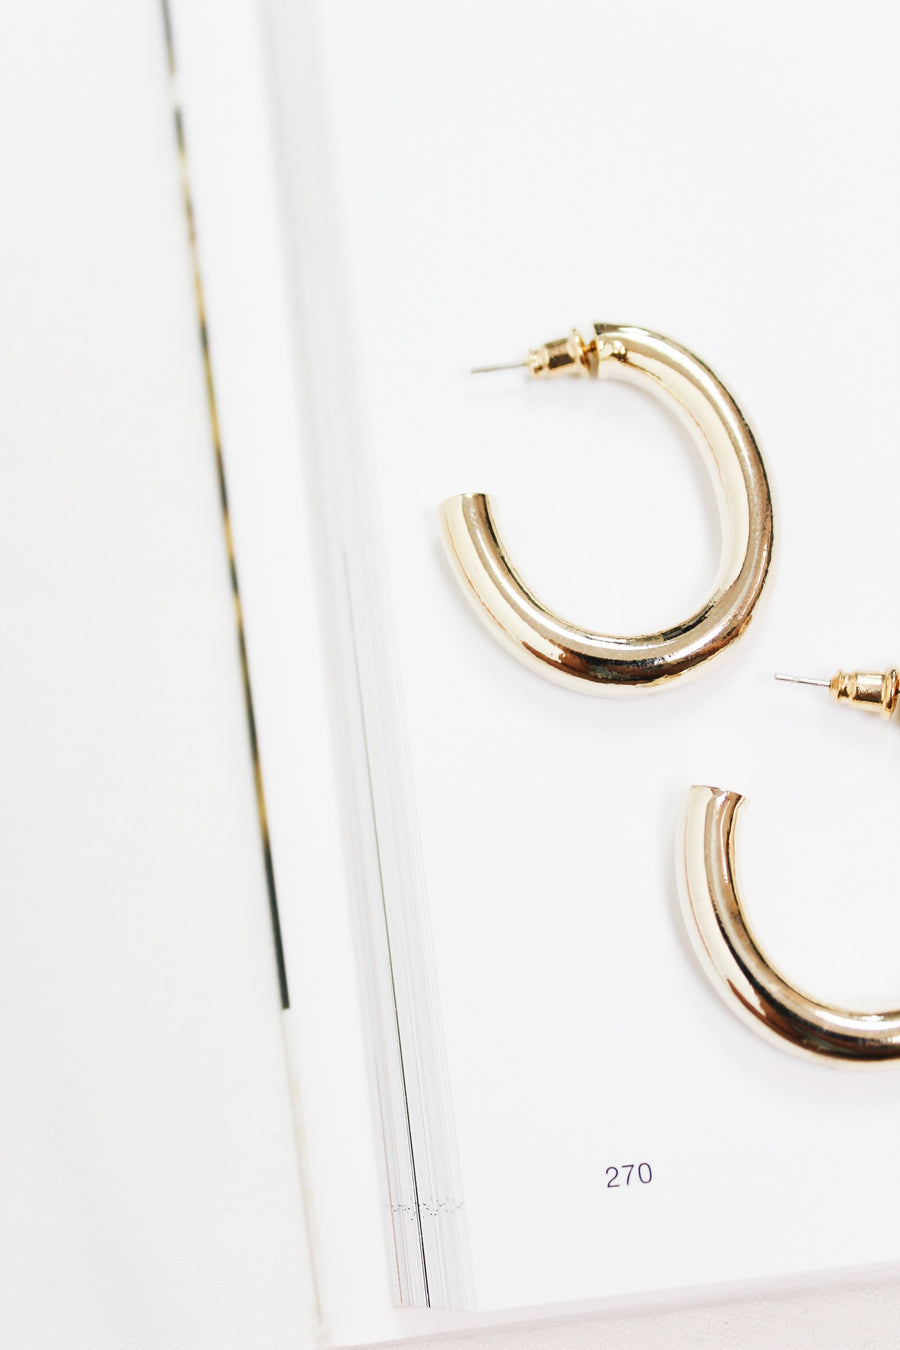 ANOTHER LIFE GOLD HOOPS - Halite Clothing